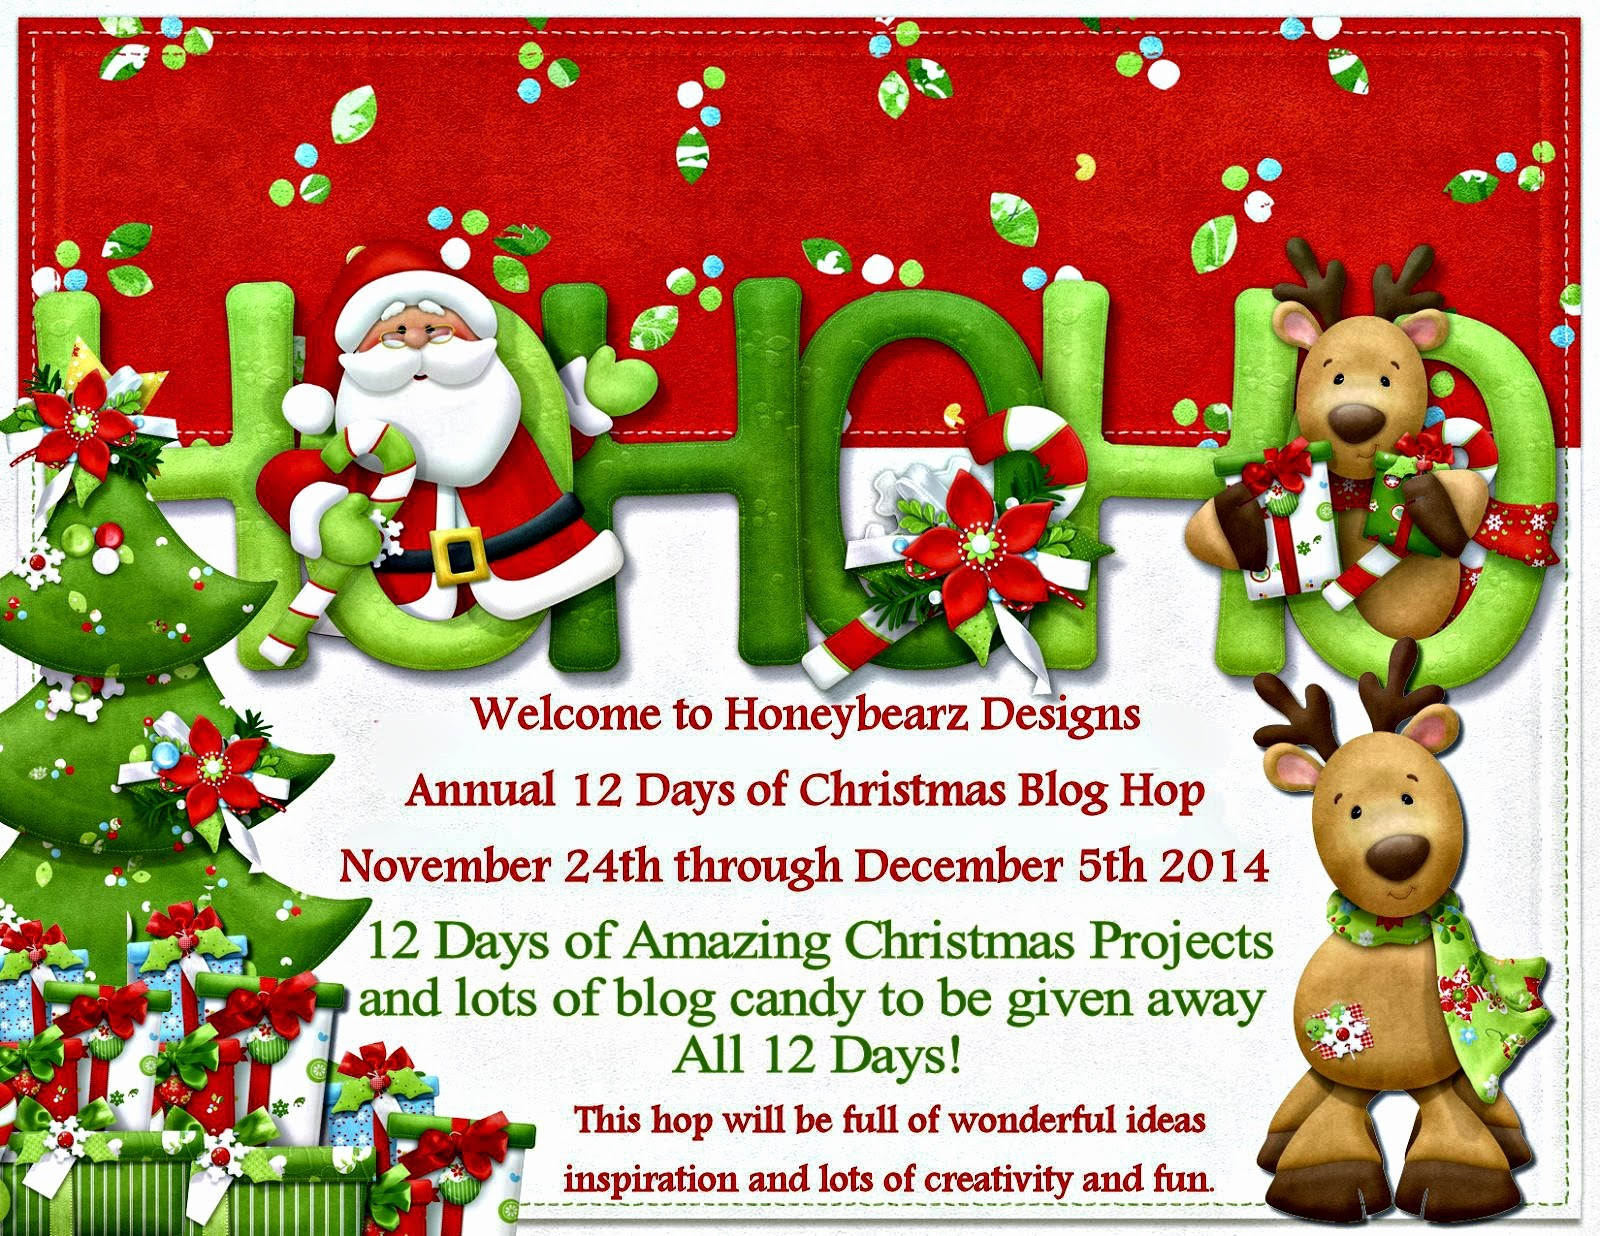 5th Annual - 12 Days of Christmas Blog Hop